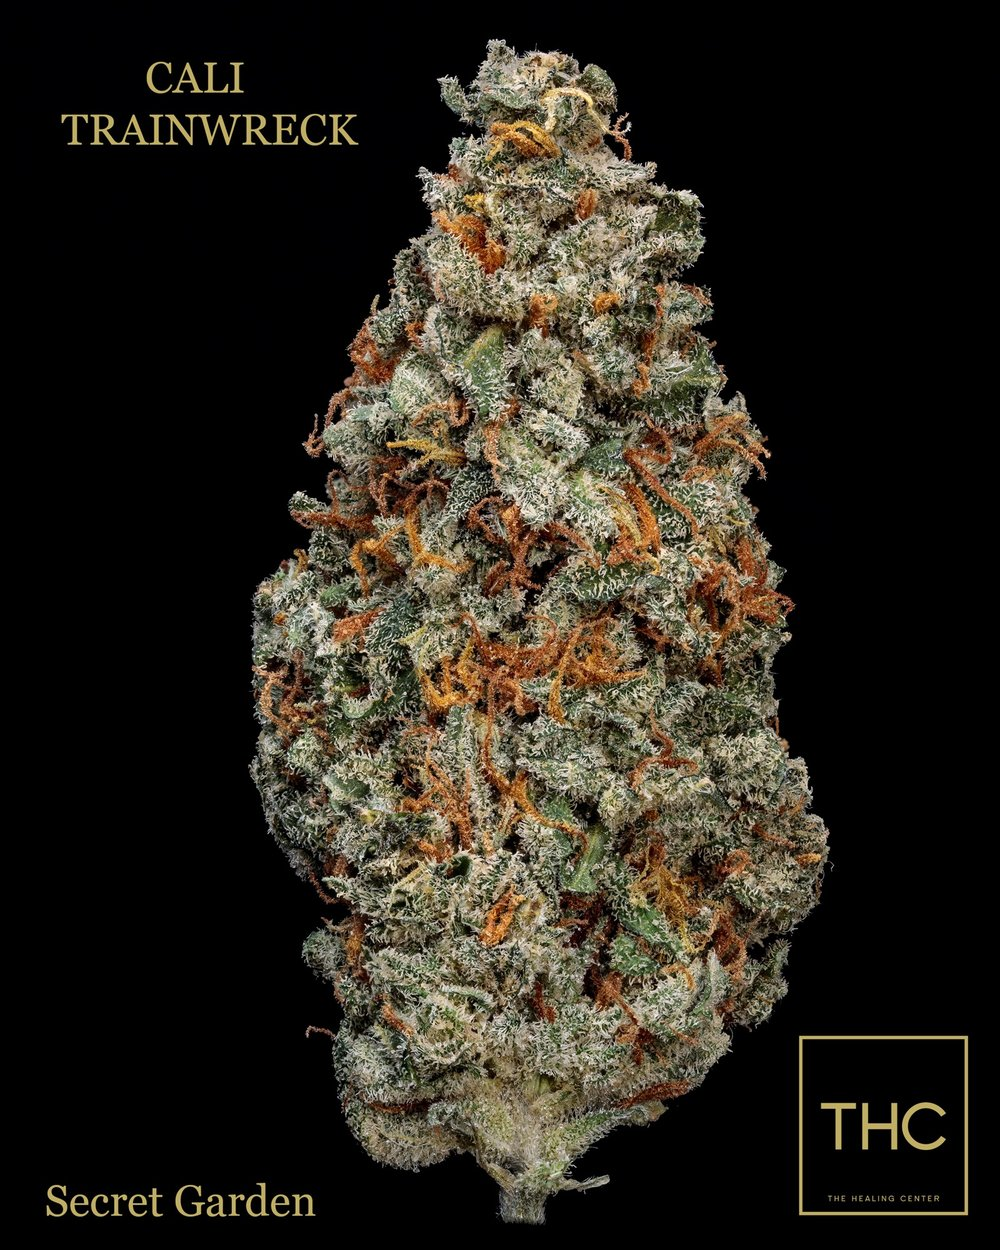 Cali Trainwreck Secret Garden THC.jpg